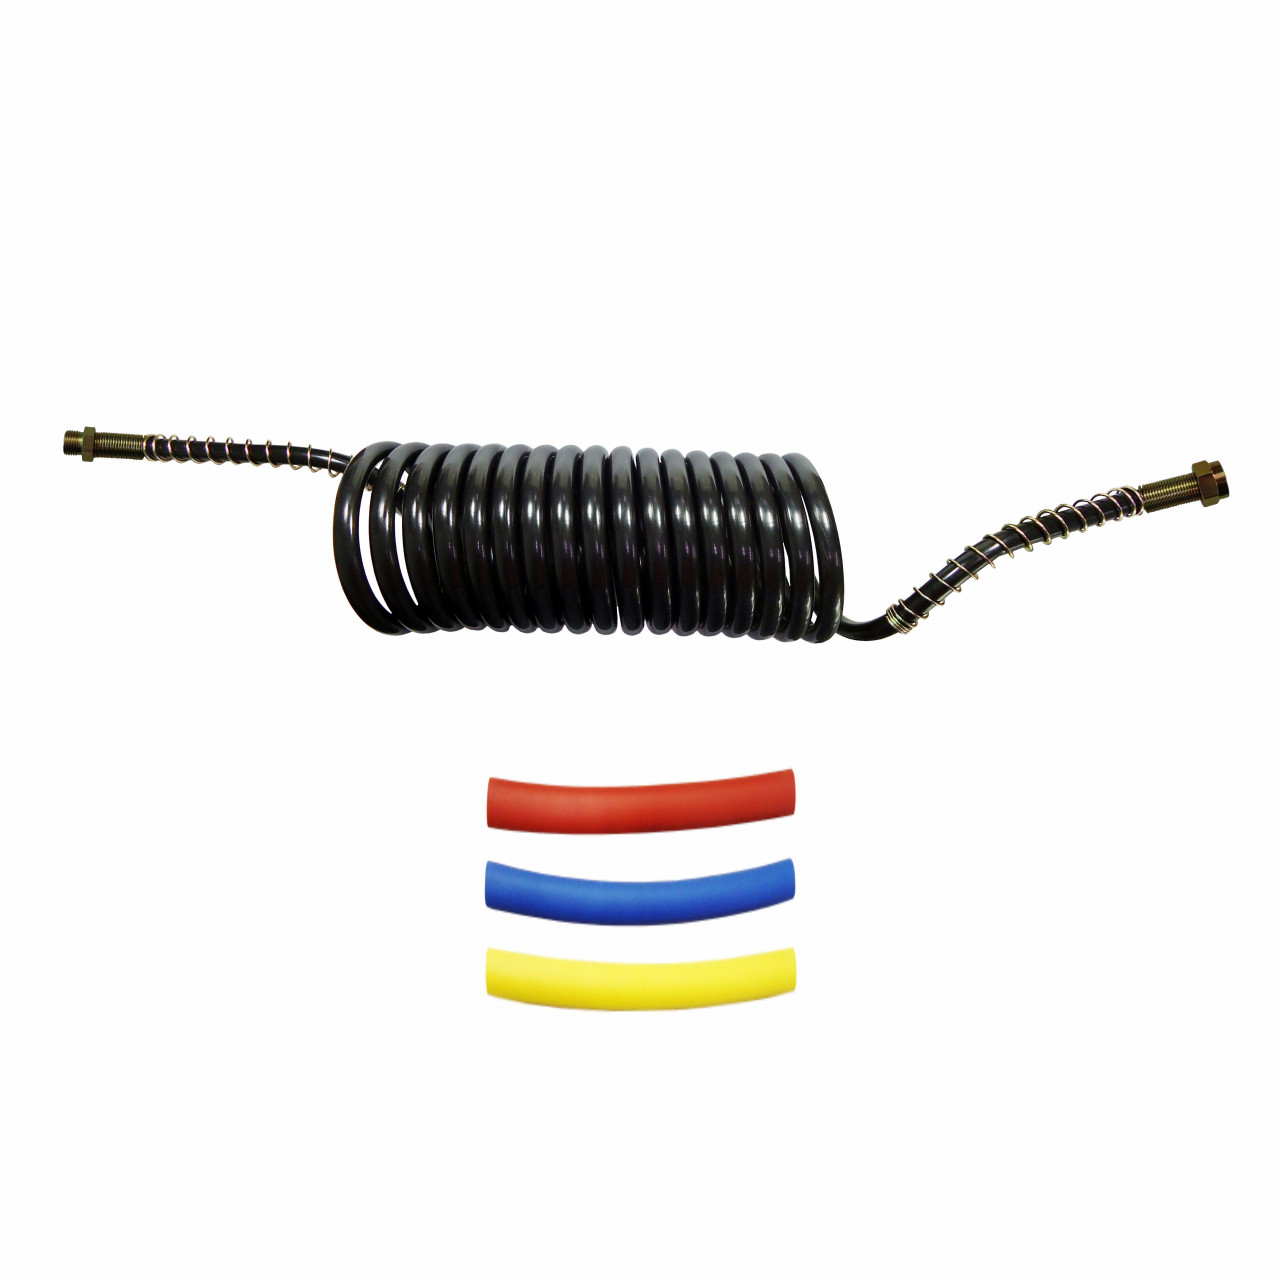 DNI8431 – Spiral Hose for Air Brake 5.5m Male M16 x Female M18 with Heat Shrink Kit Colors